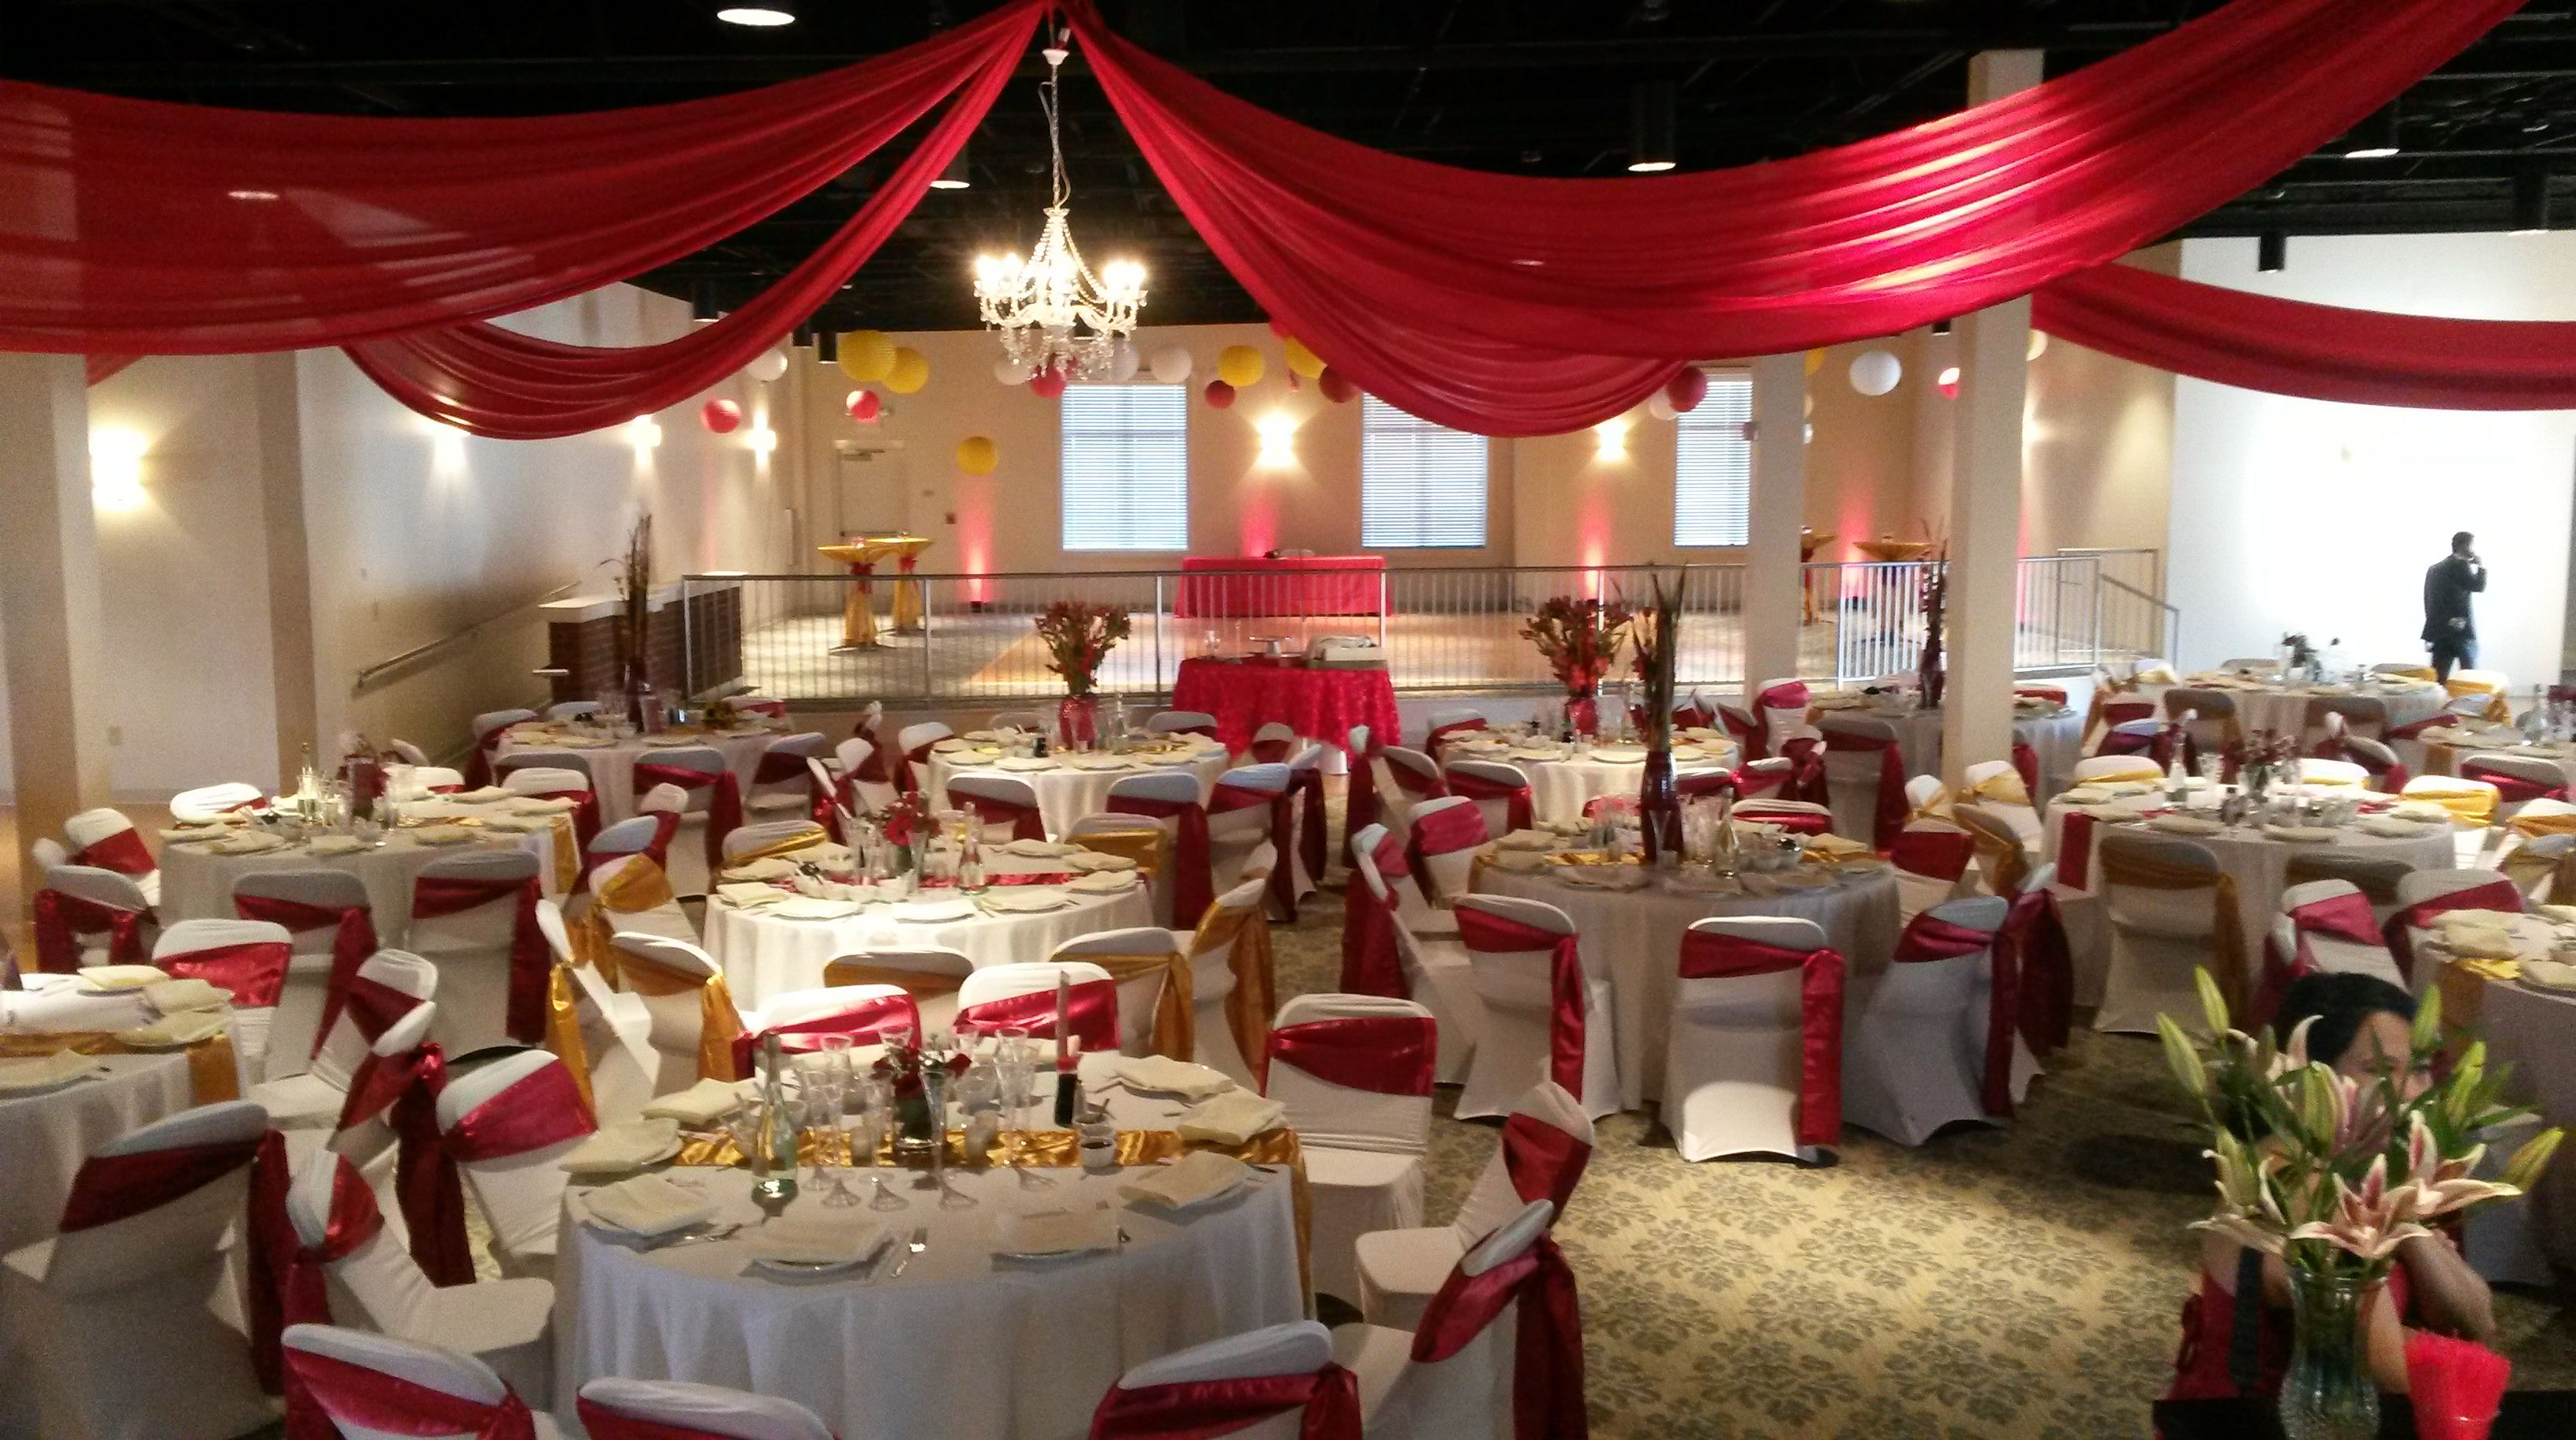 Beautiful Draped Ceiling For A Wedding Reception Events At